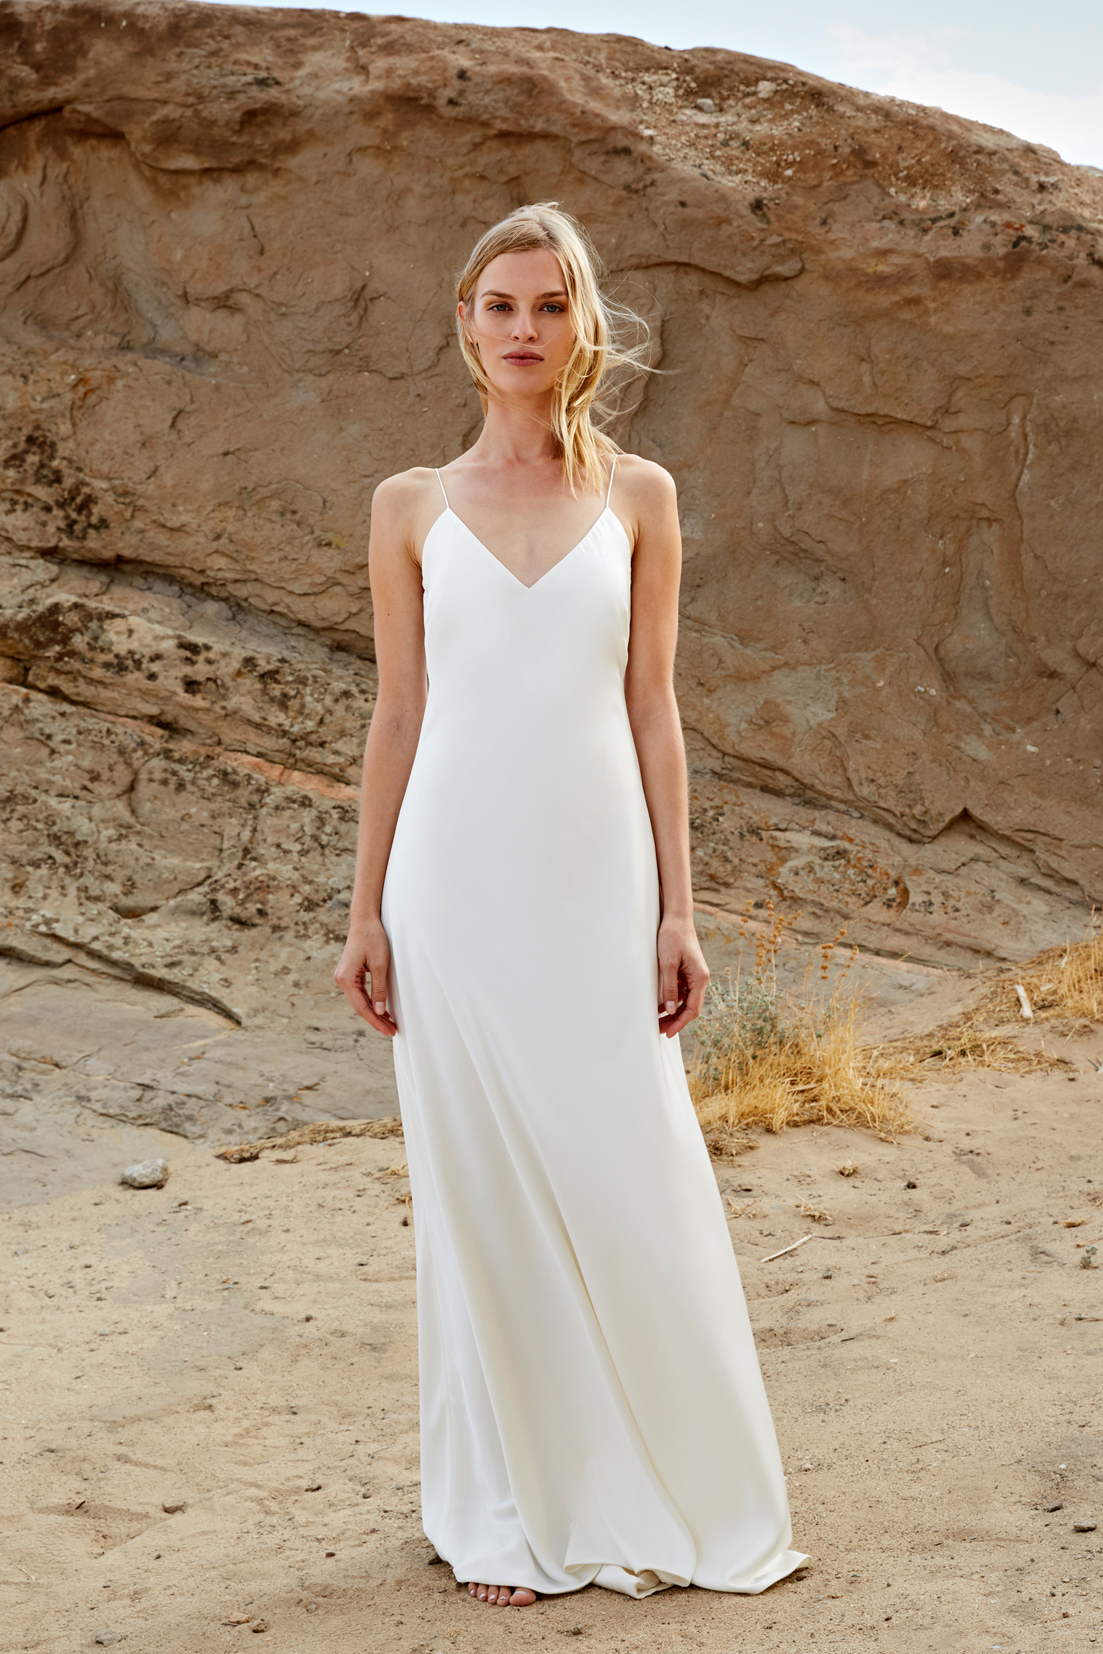 savannah miller fall 2018 v-neck spaghetti strap wedding dress